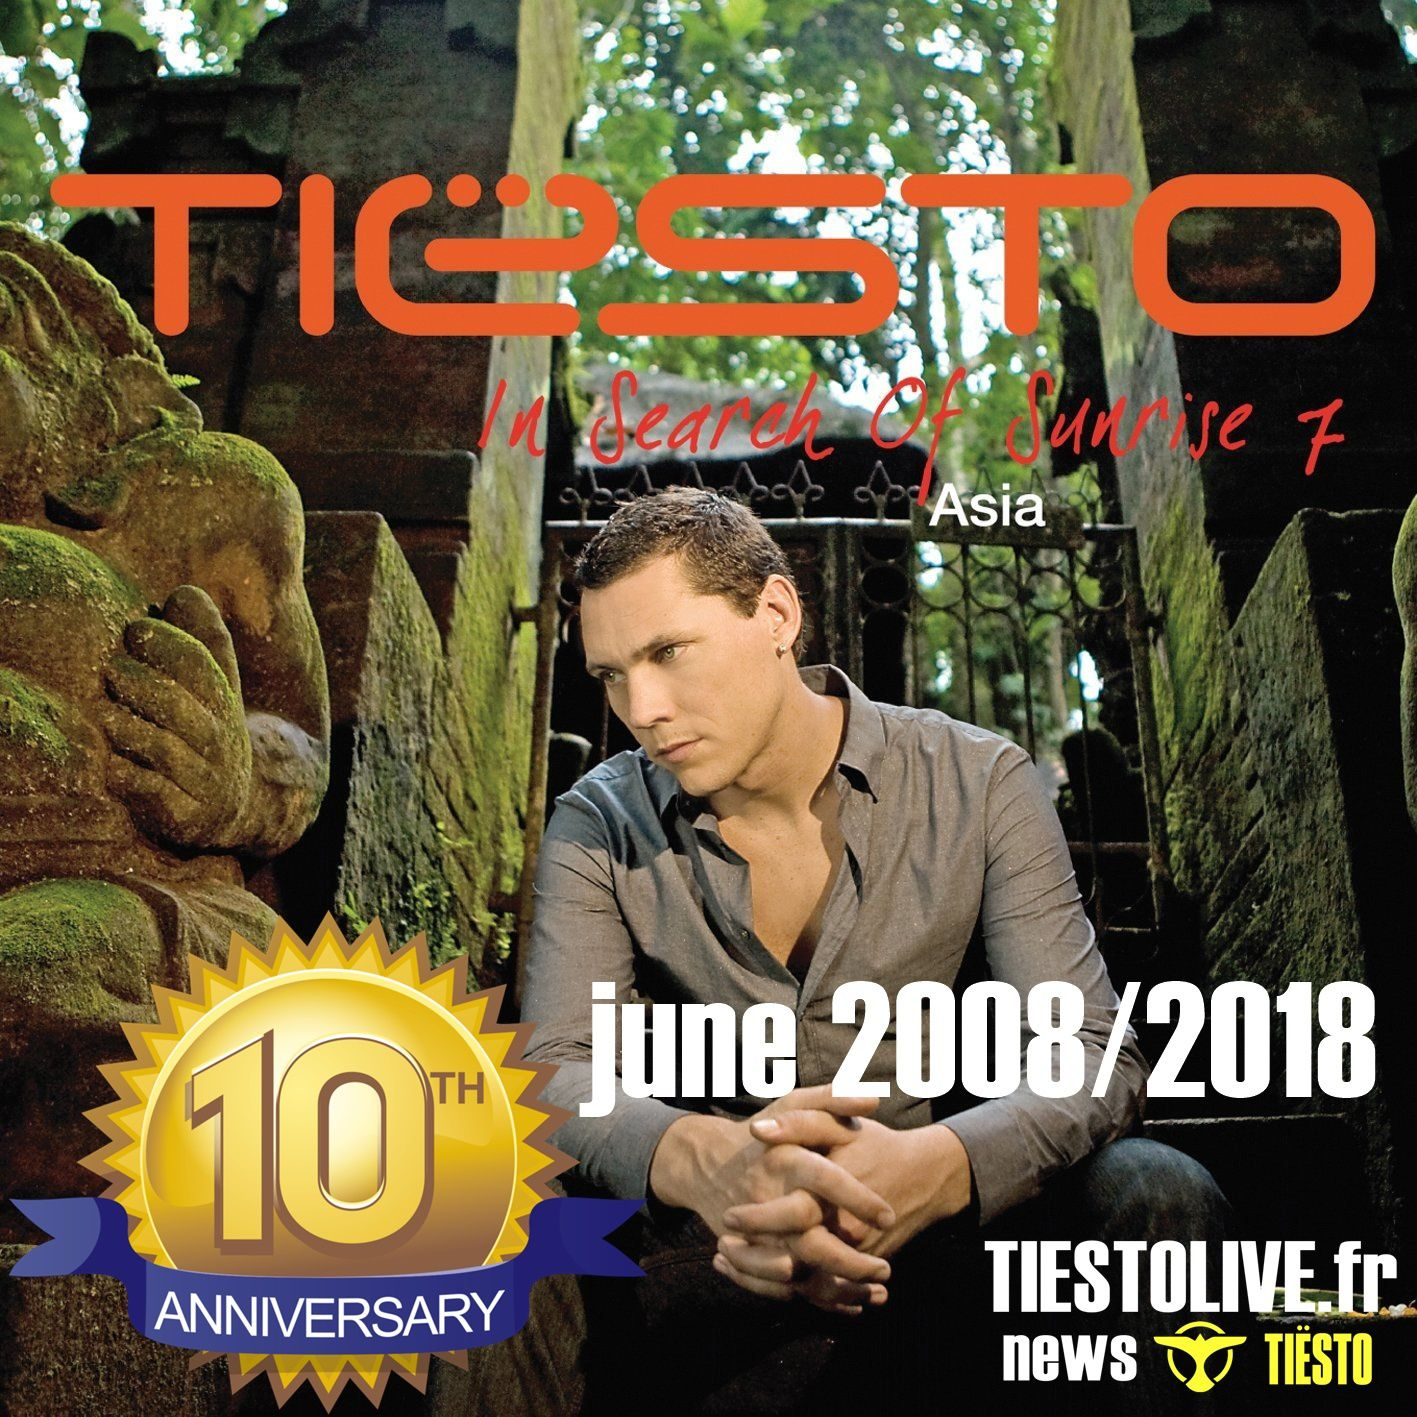 Happy 10th Birthday | Tiësto -  In Search Of Sunrise 7 Asia | june 2008/2018